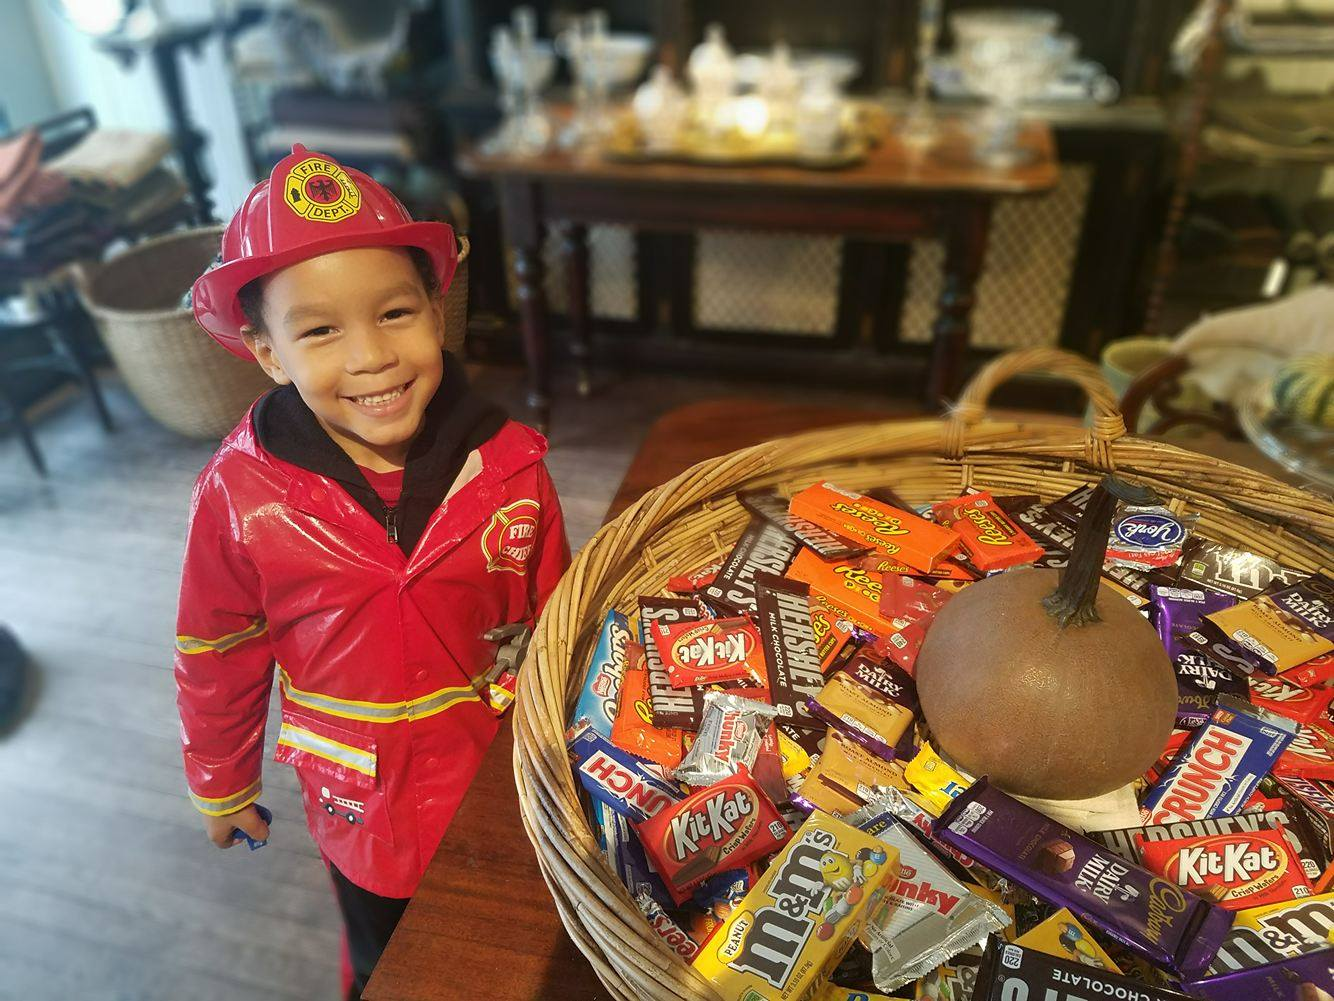 Trick or Treat Firefighter Costume